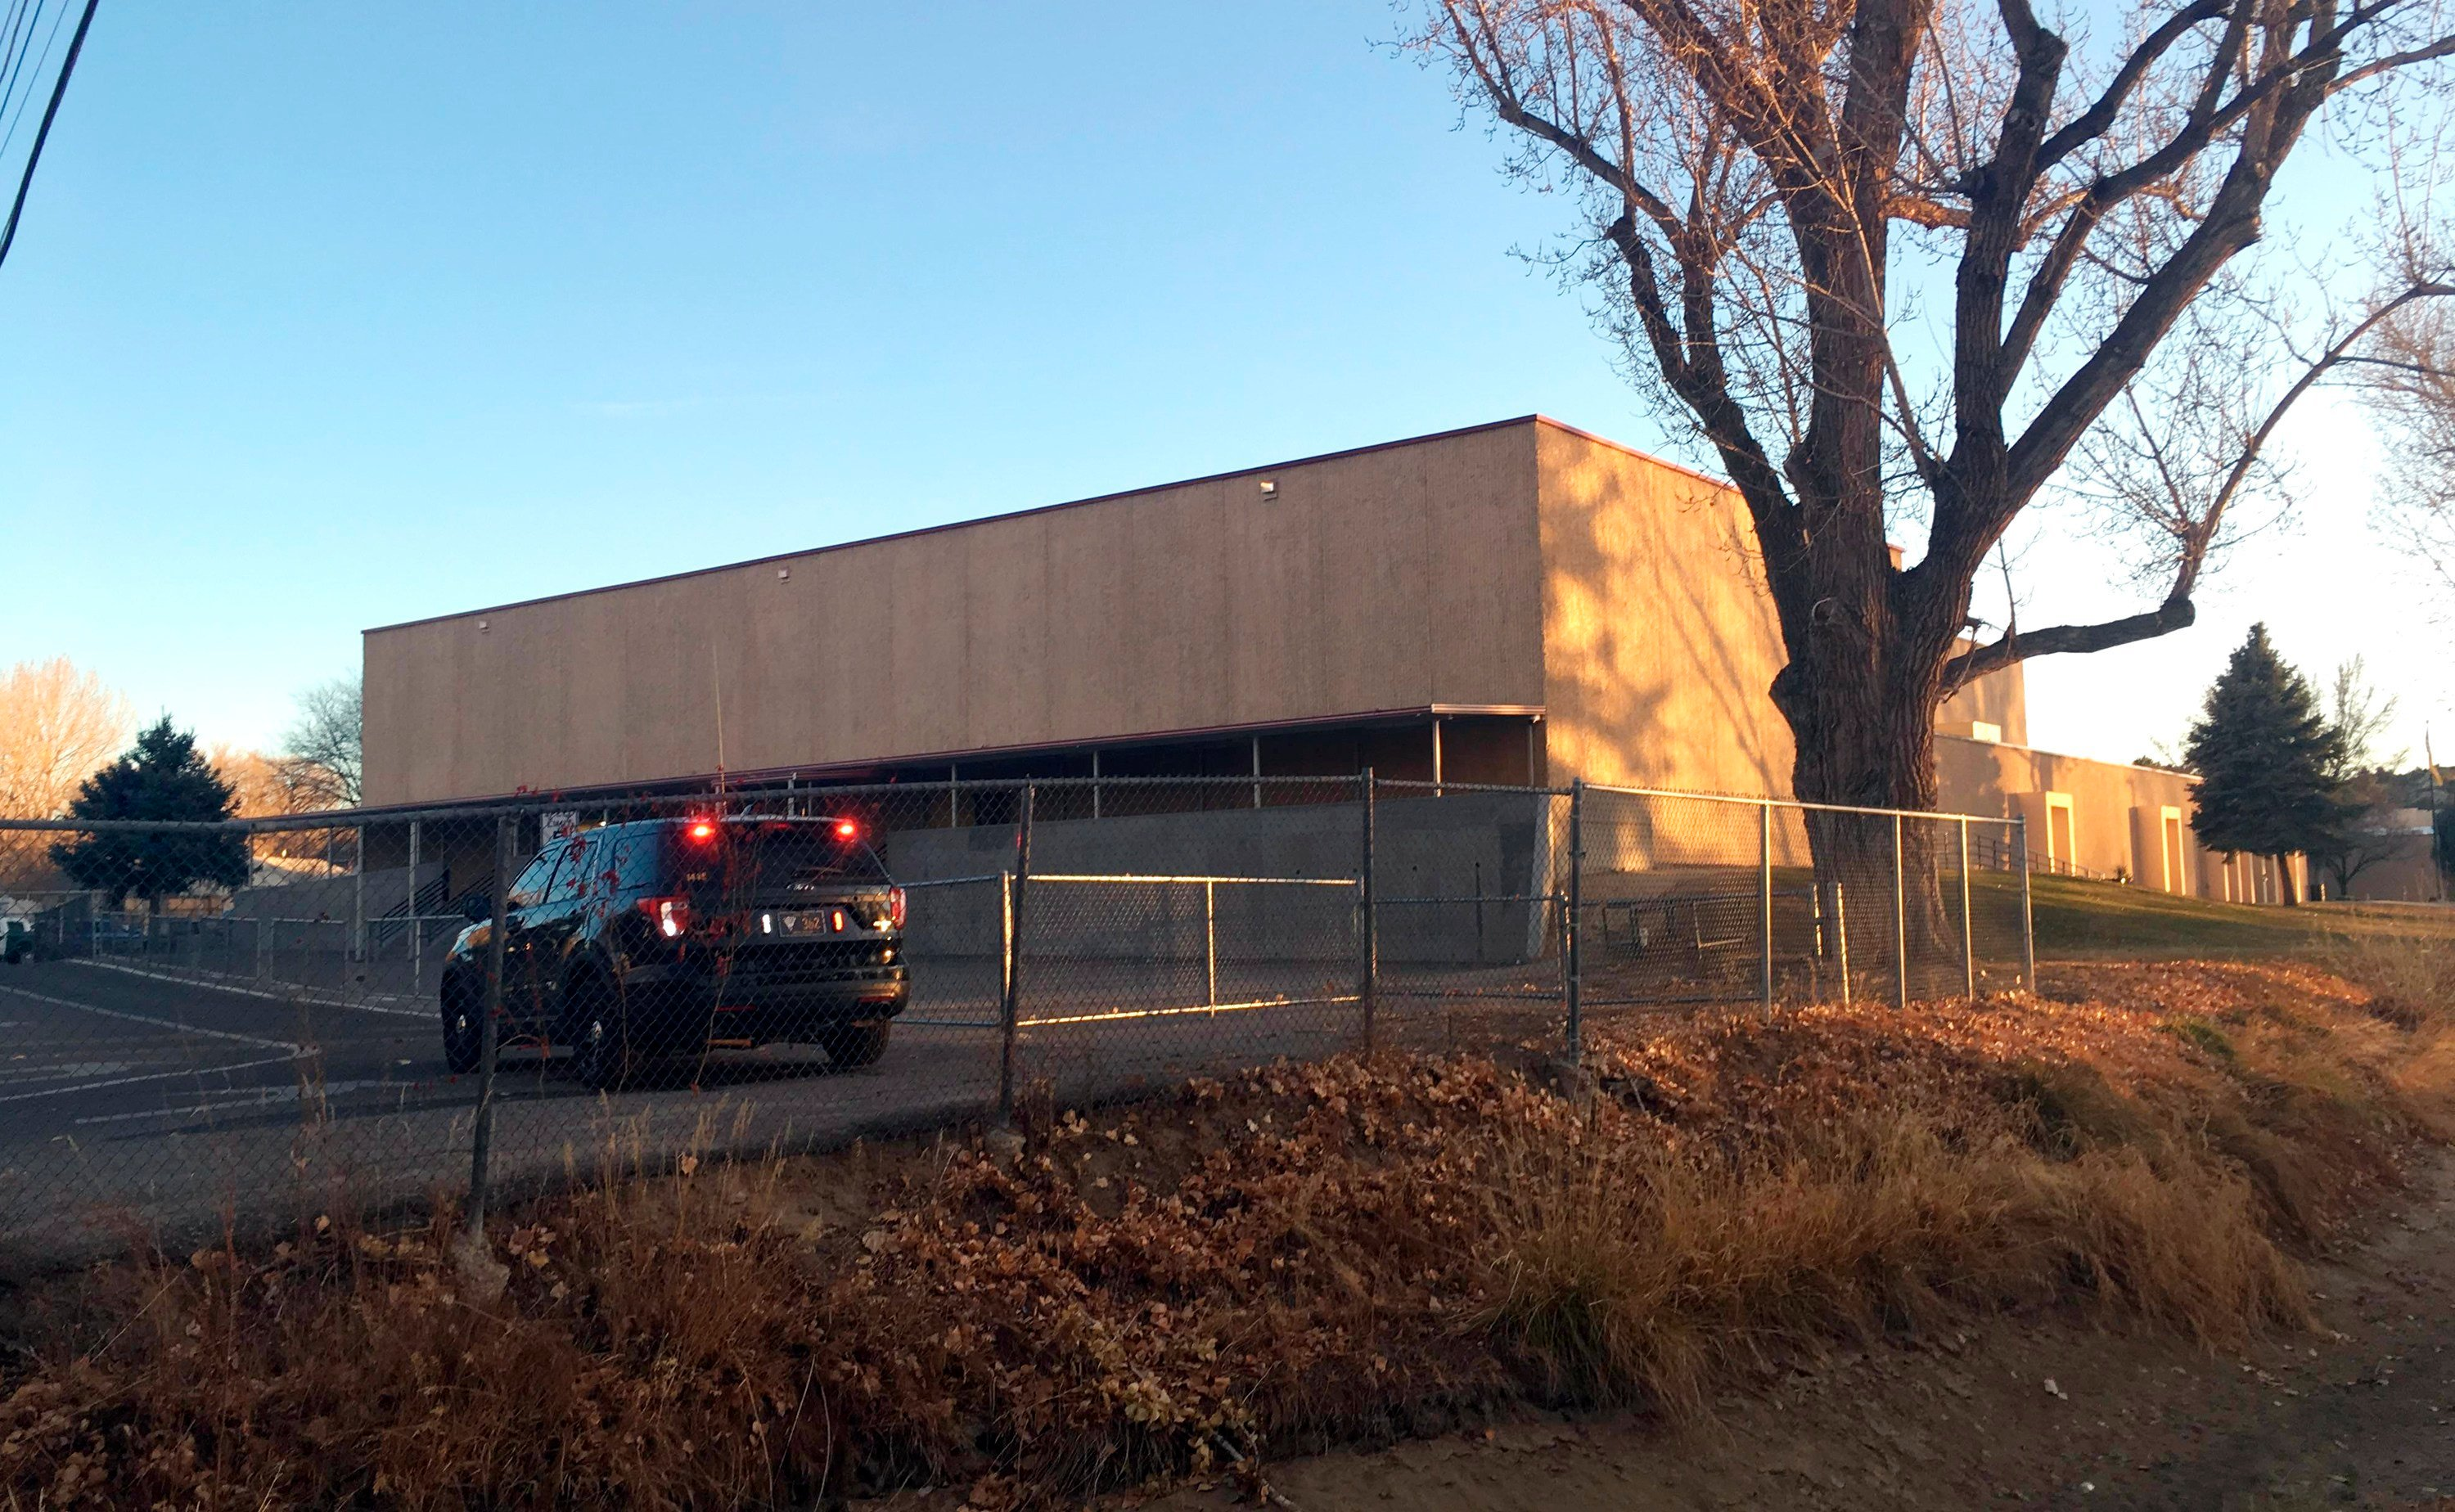 Aztec High School is shown in Aztec, N.M., Thursday, Dec. 7, 2017. Students hid in their classrooms, some behind locked doors or in closets, as a gunman opened fire Thursday inside a New Mexico high school,